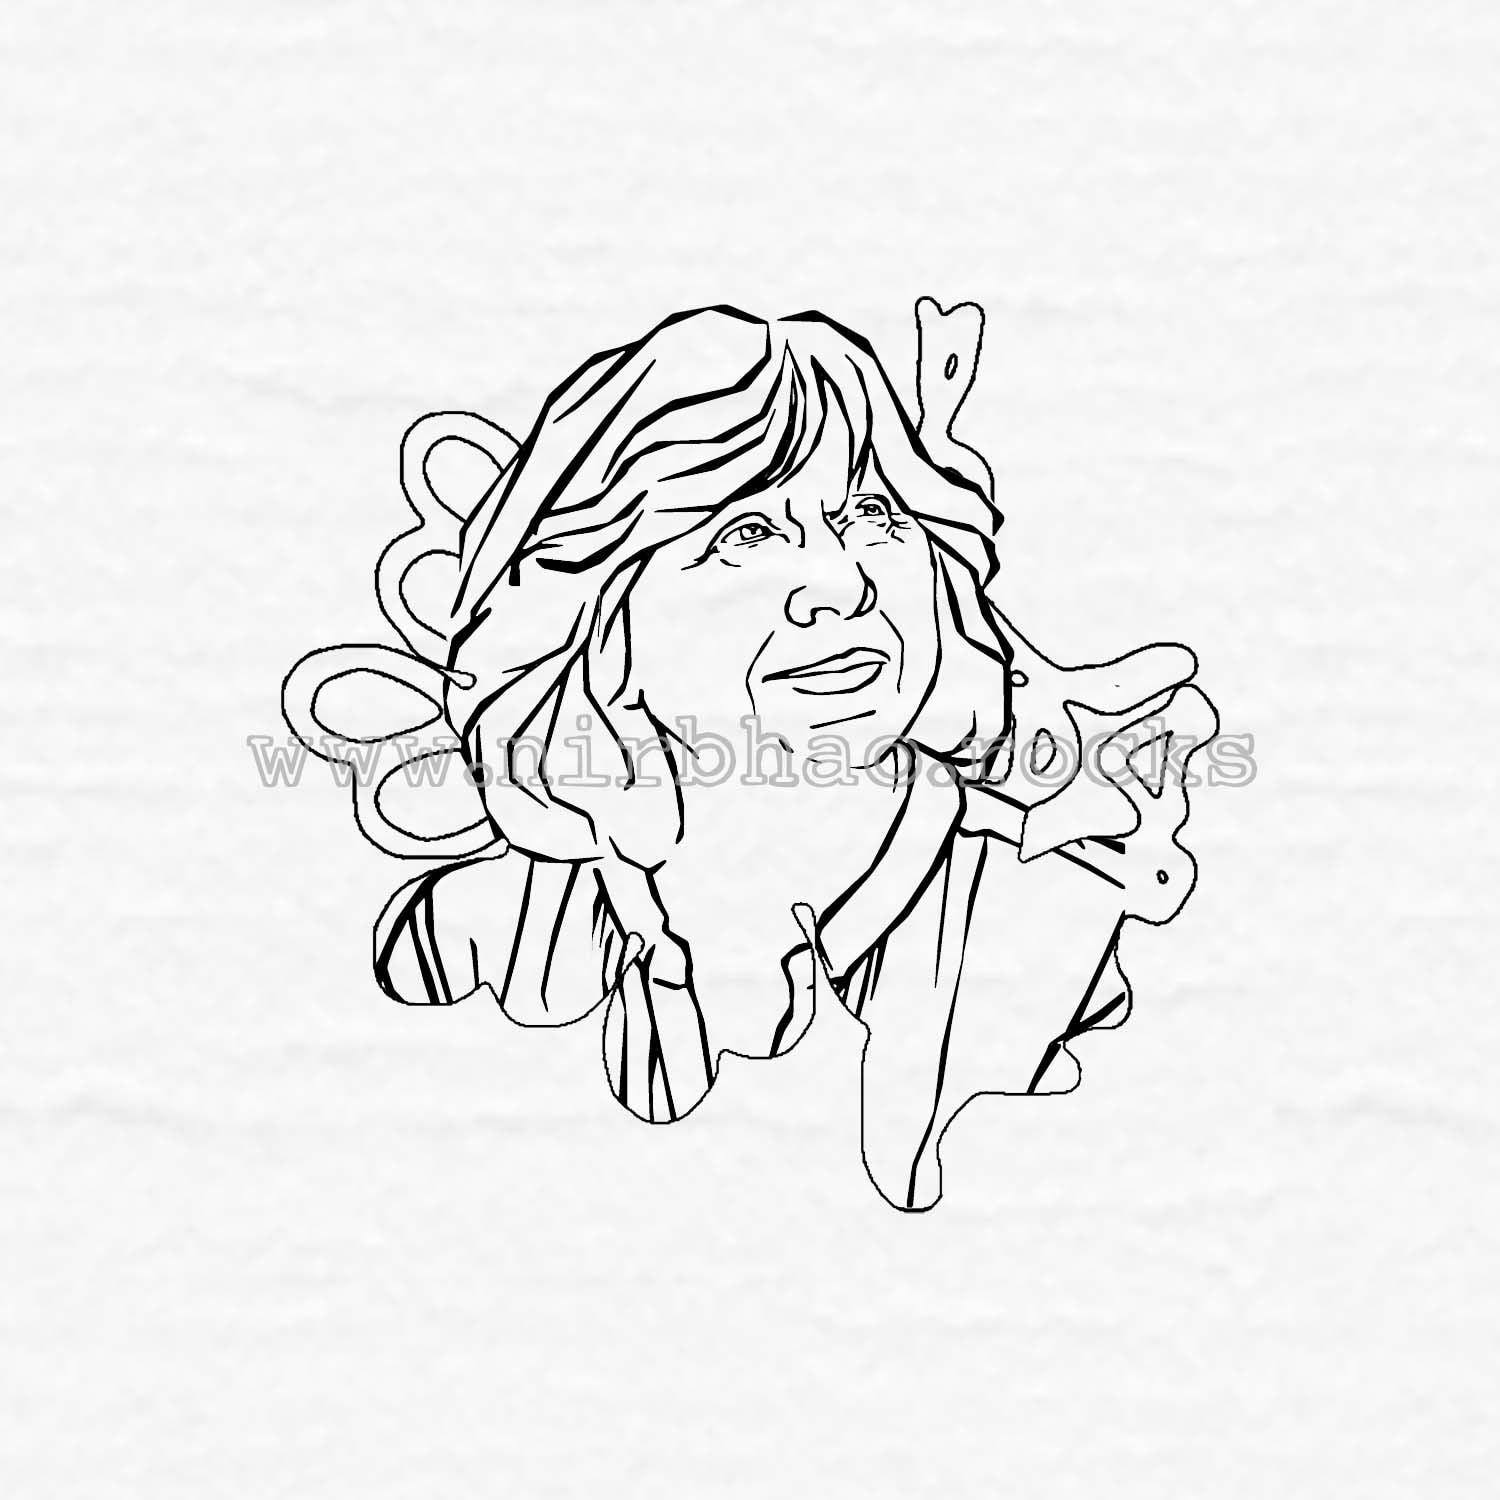 We Are Awesome Coloring Pages Nirbhao